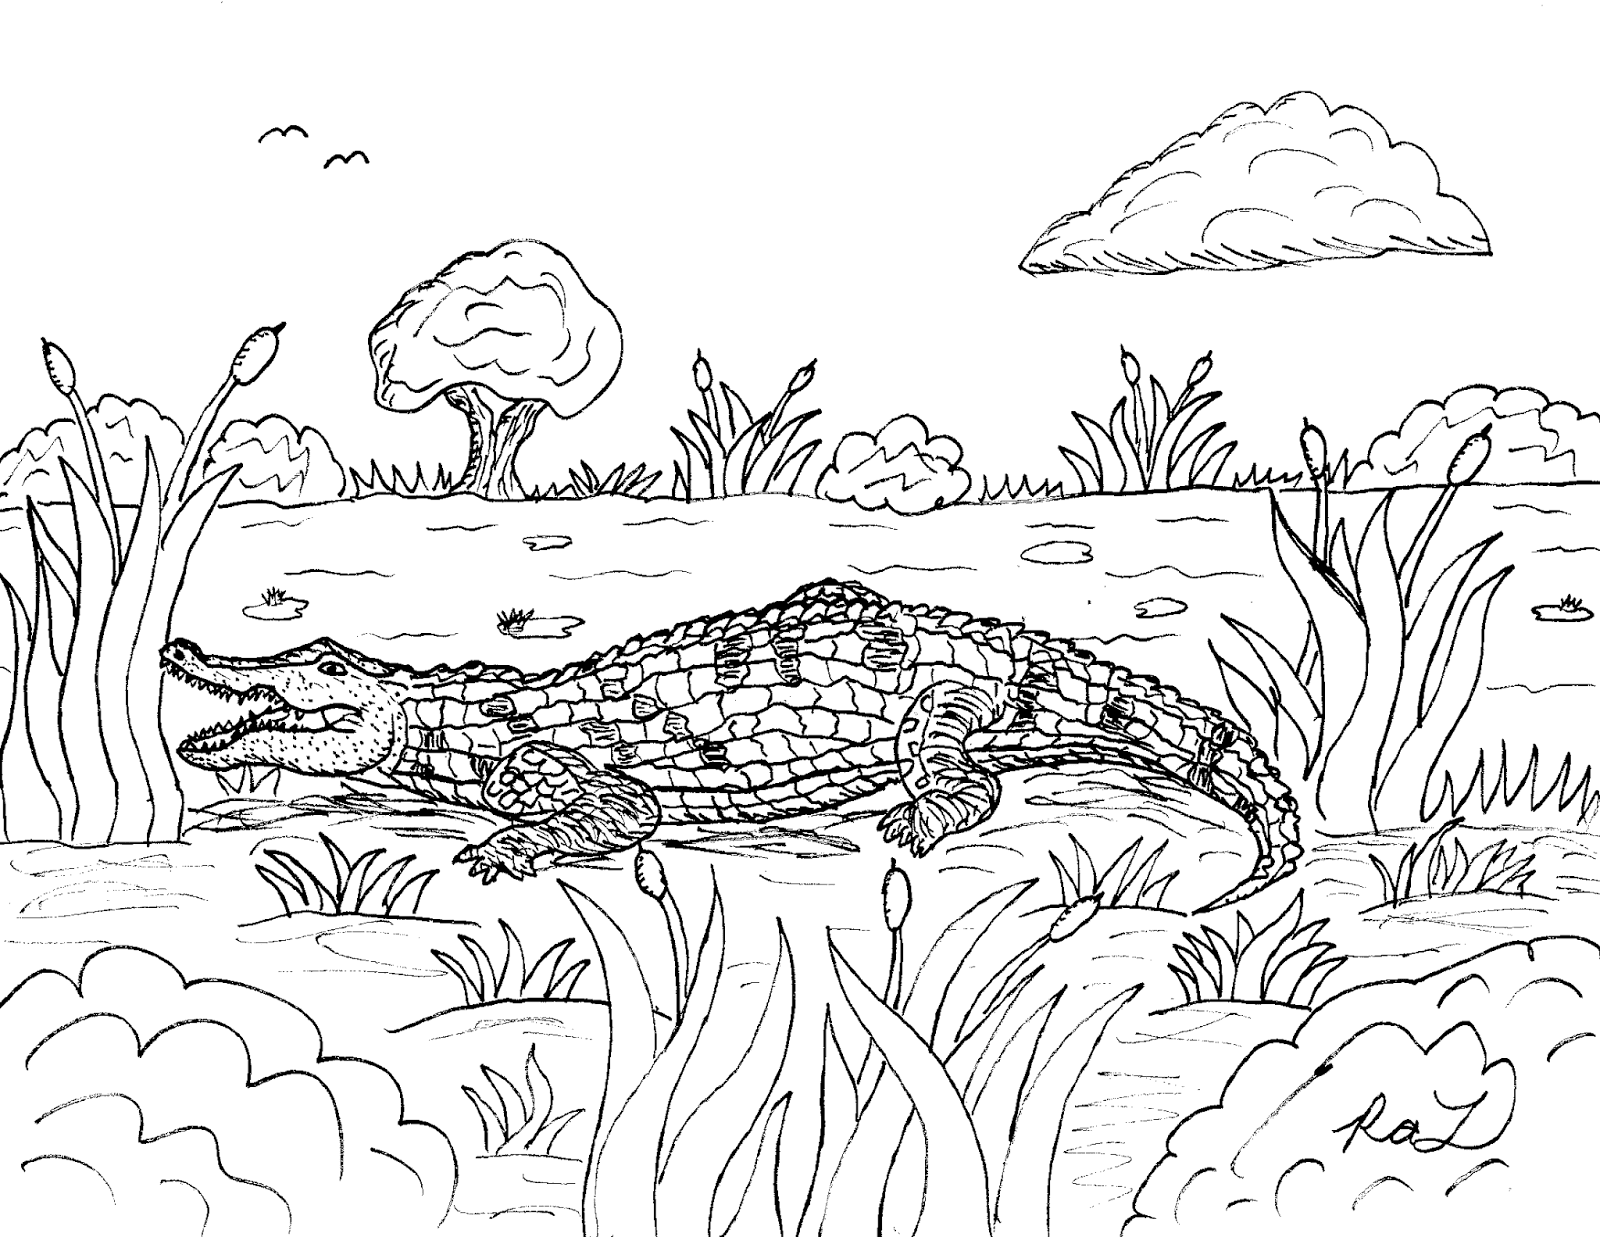 Robin S Great Coloring Pages American Alligator And